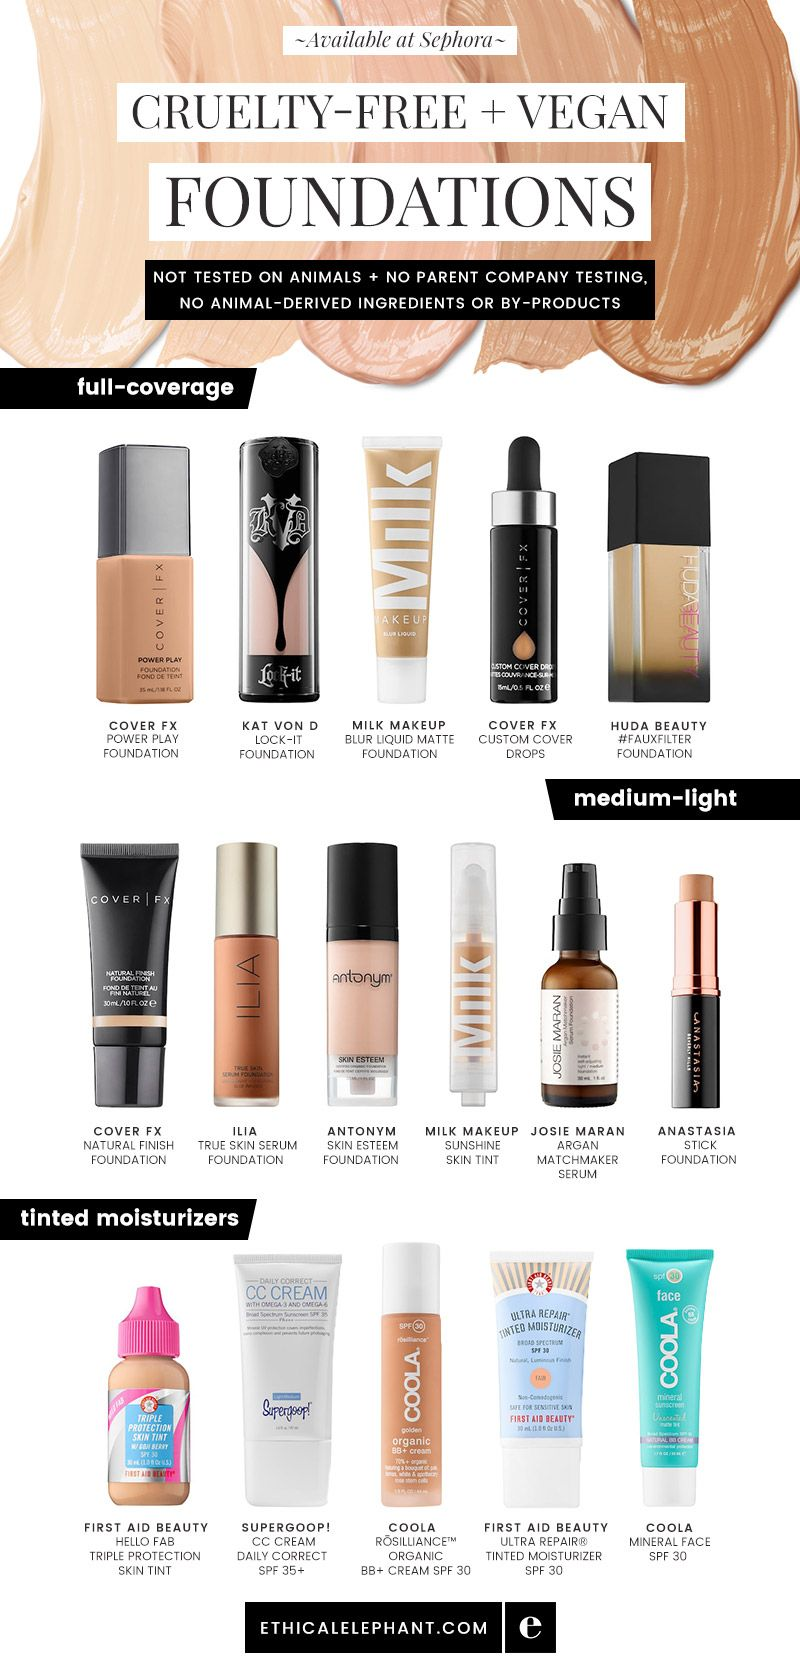 Vegan Foundation Options Available At Sephora Not Tested On Animals No Parent Compan Cruelty Free Makeup Vegan Cruelty Free Makeup Brands Cruelty Free Makeup